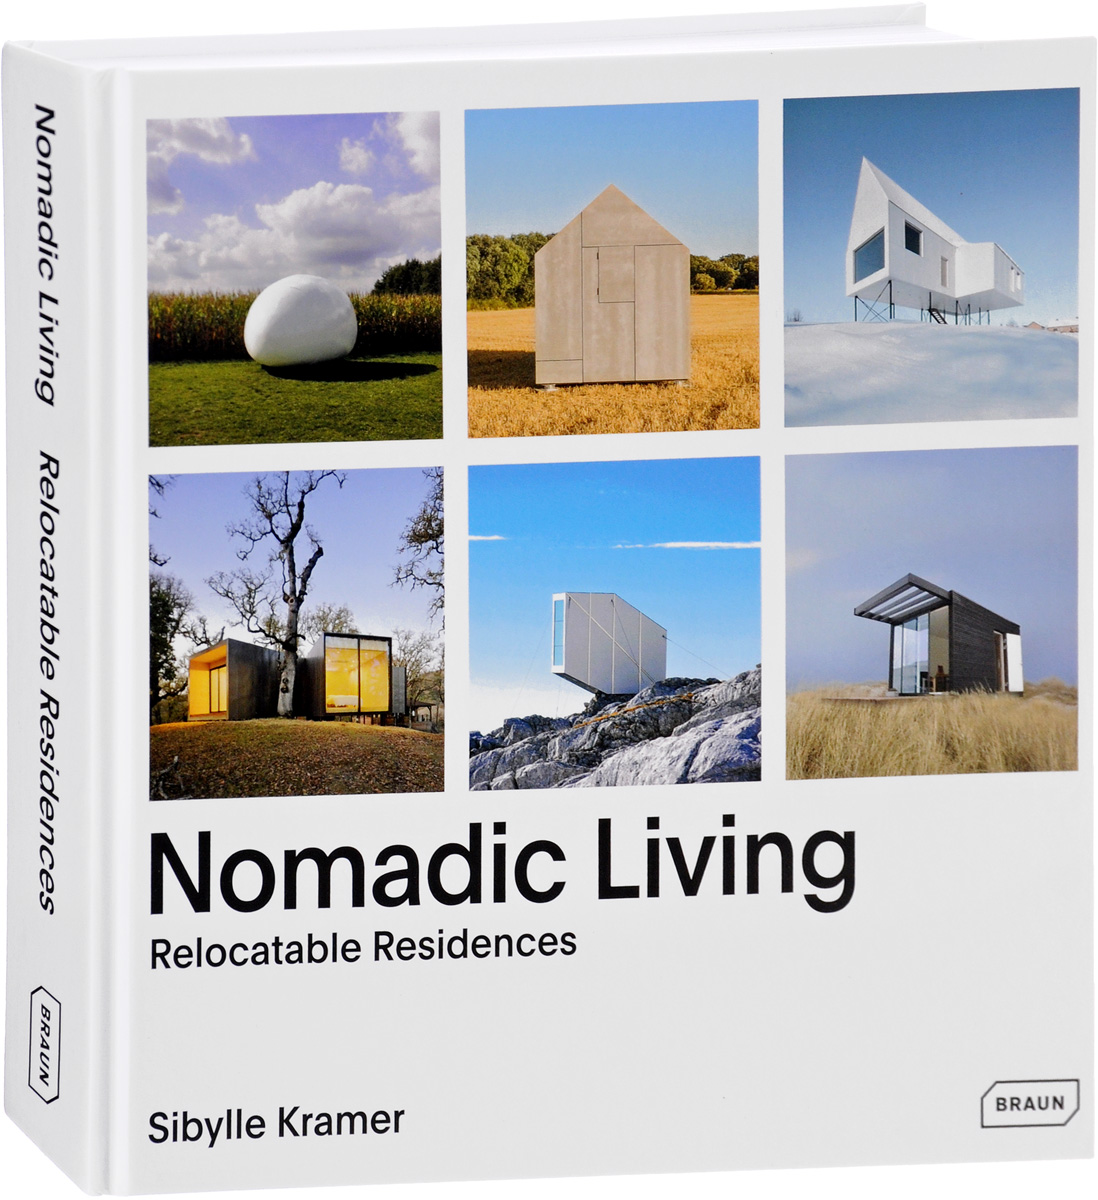 Nomadic Living: Relocatable Residences senior residences